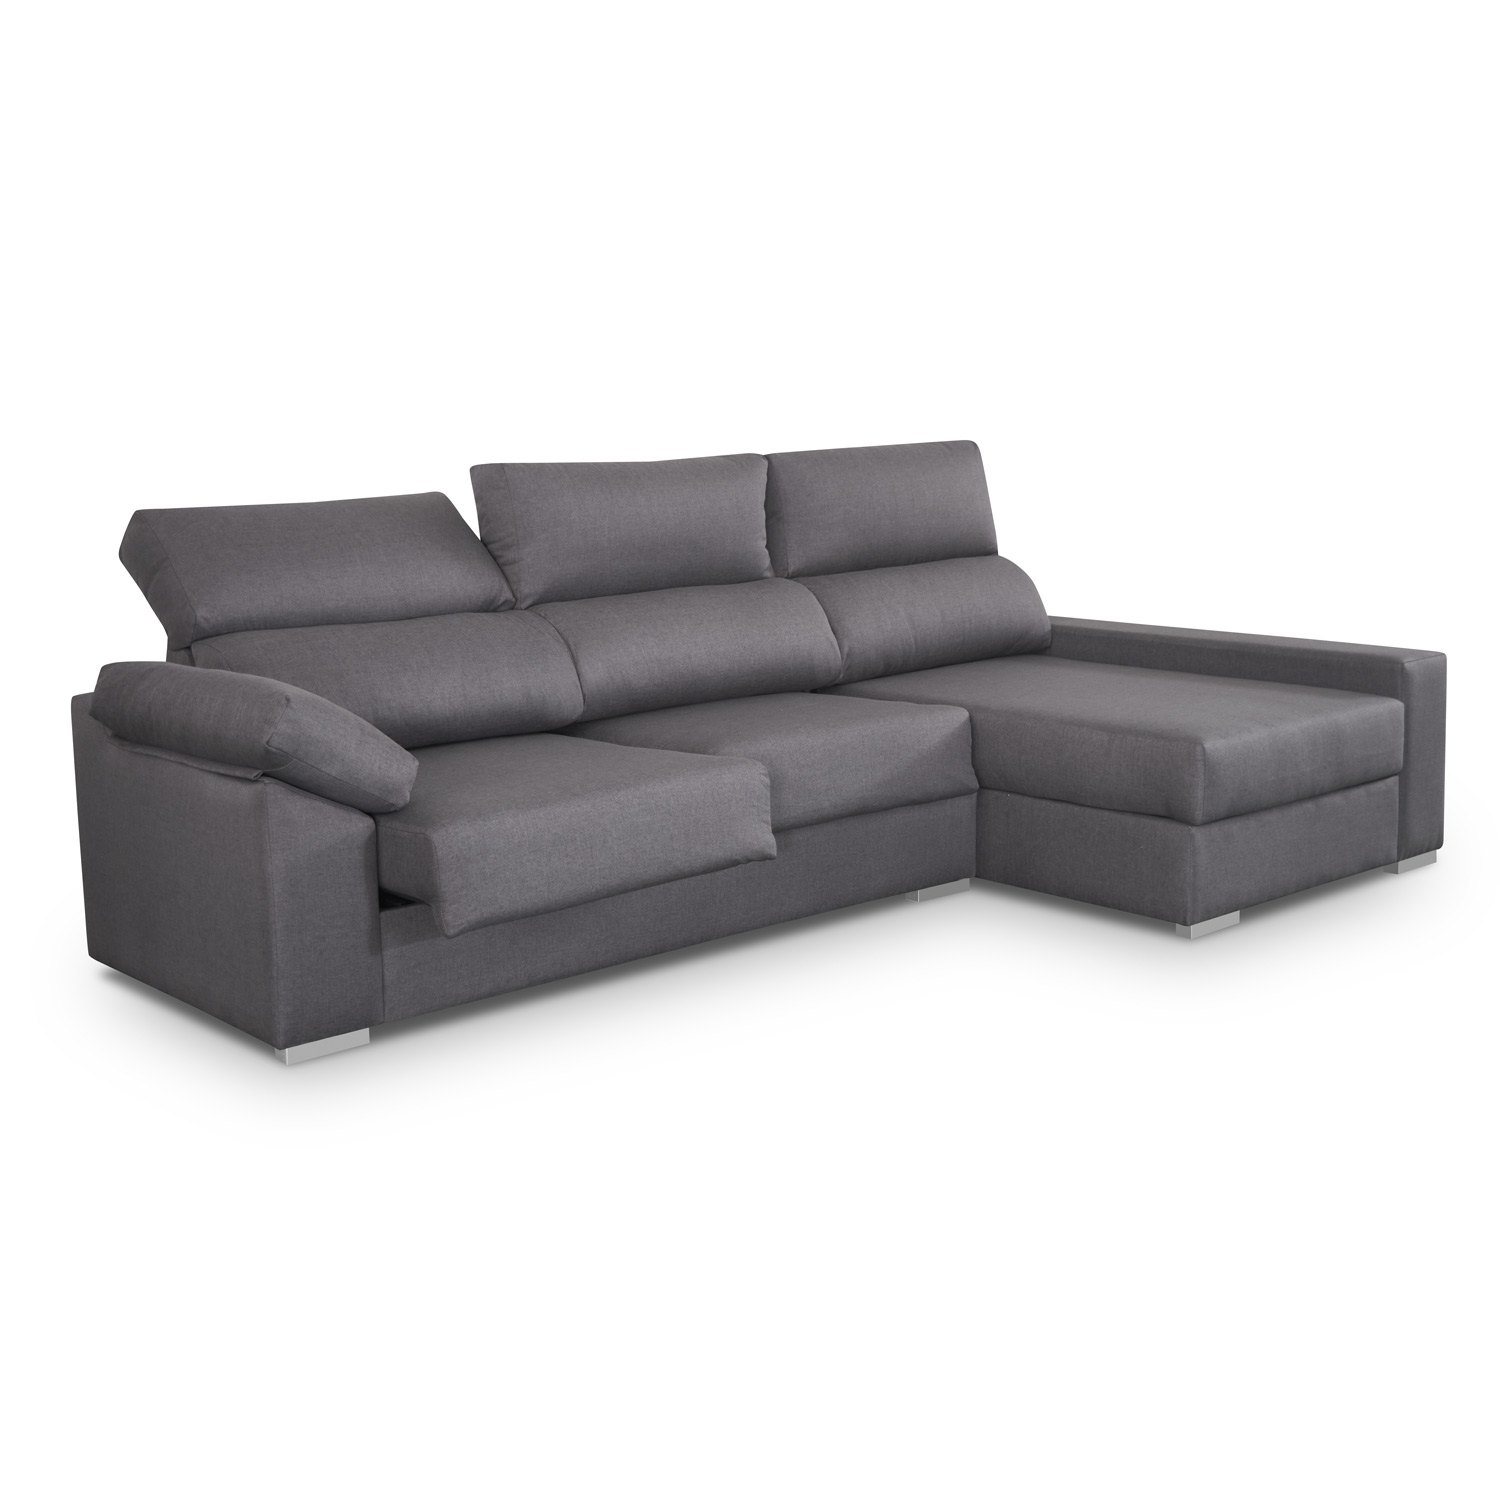 oferta sofa chaise longue sof chaise longue zoe. Black Bedroom Furniture Sets. Home Design Ideas